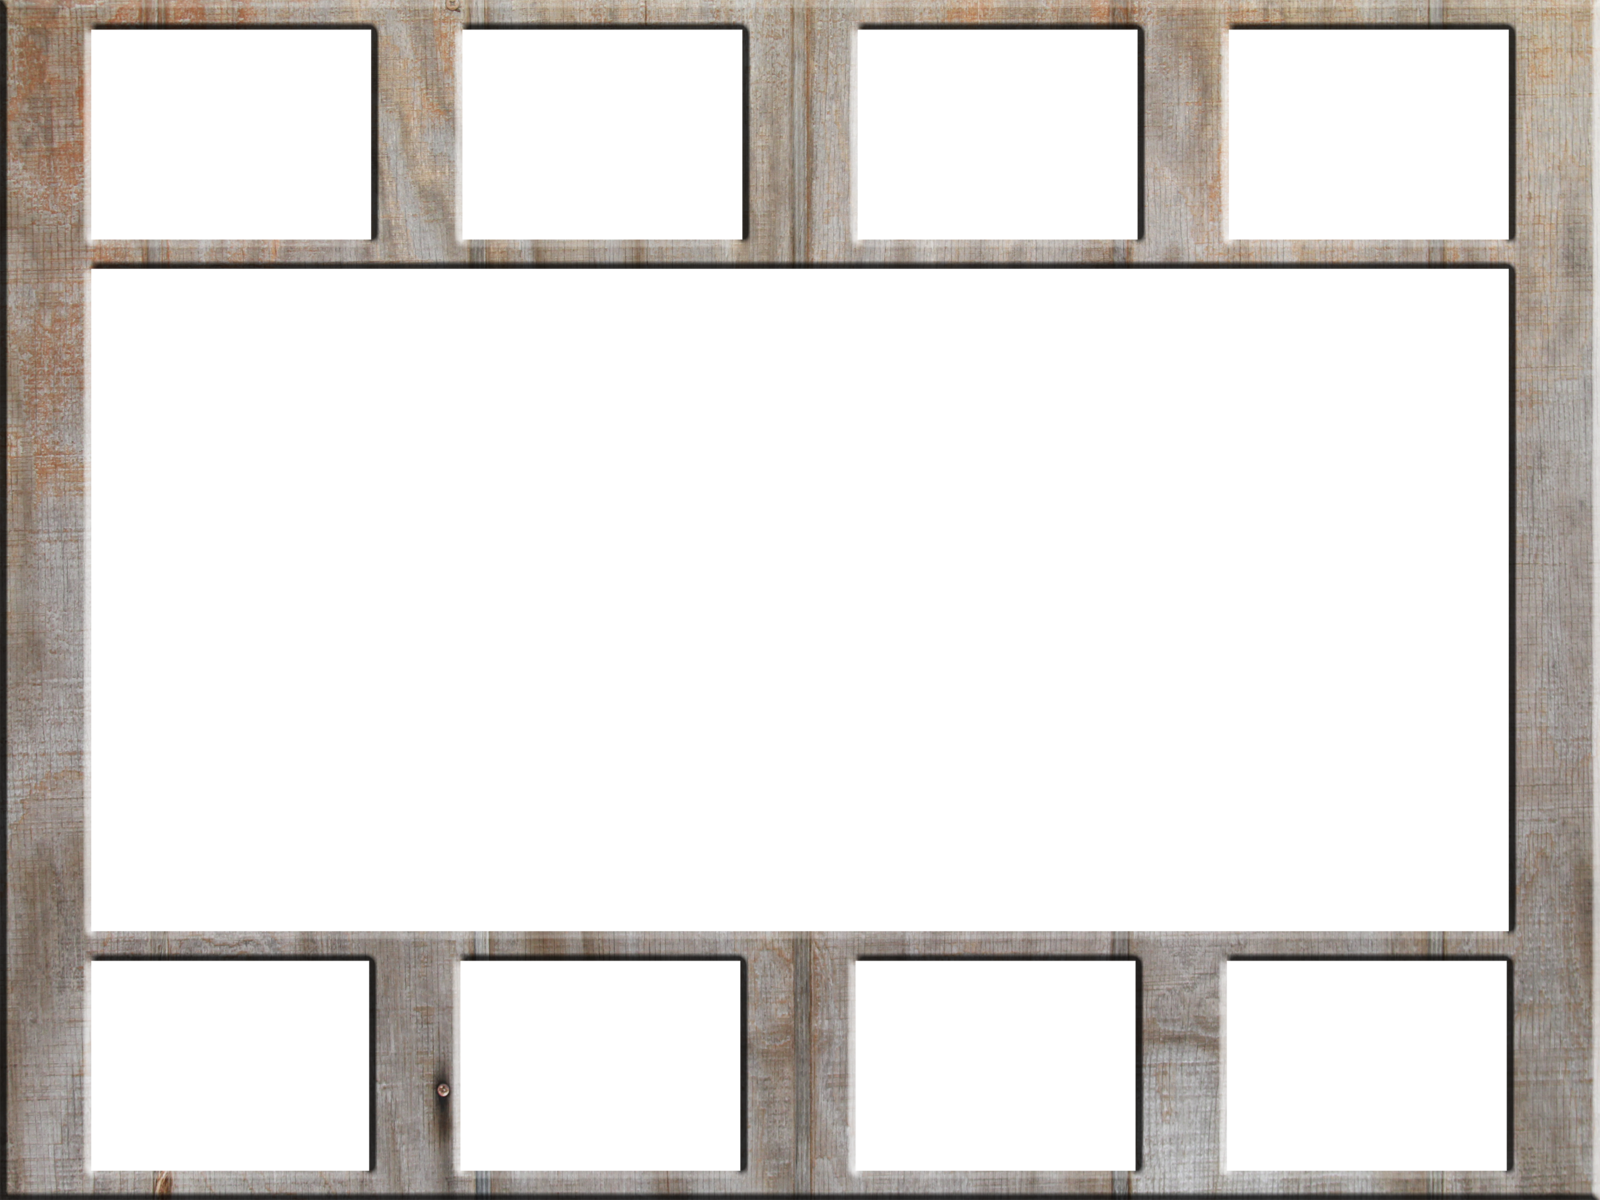 Collage PNG Images Transparent Free Download.